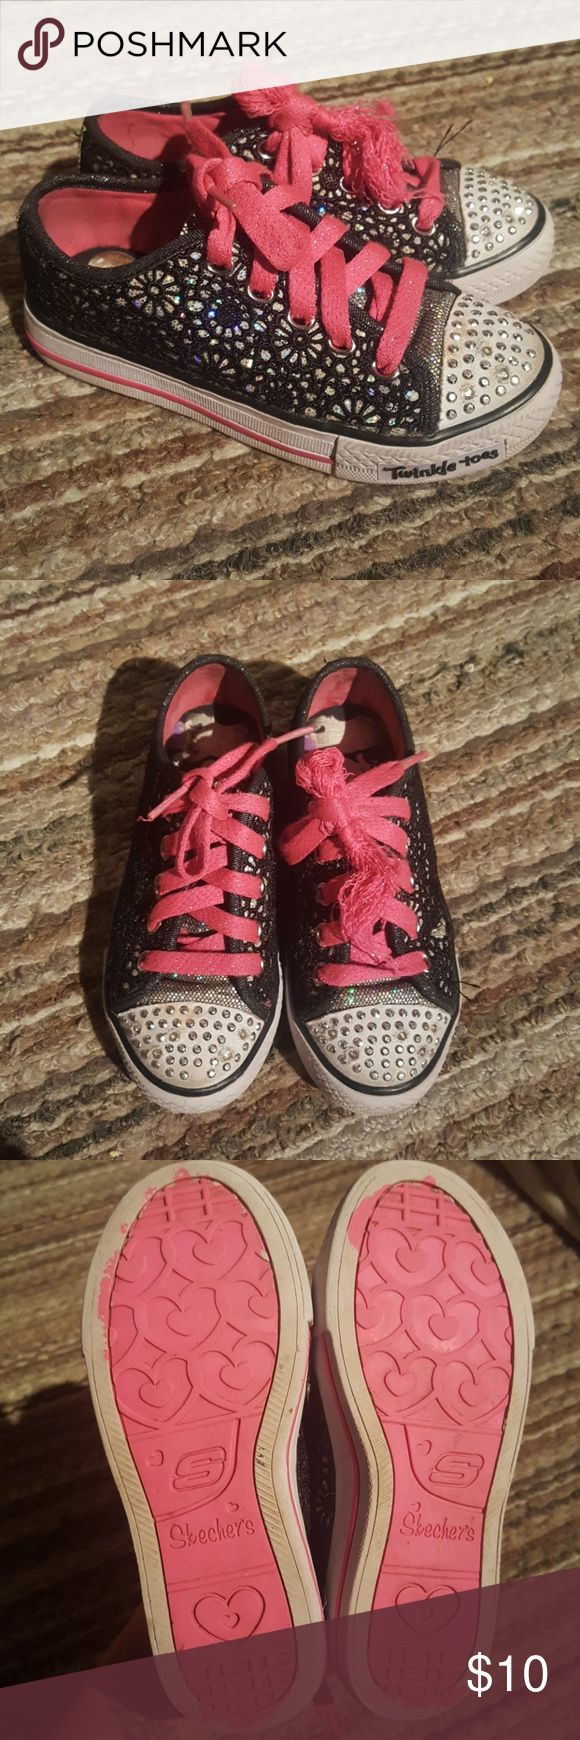 Girls sneakers Sketchers brand, Twinkle toes and the lights still work, black lacey overlay with silver sparkle underneath, pink laces, which need replacing. Used condition but still in good condition. See photos for laces Skechers Shoes